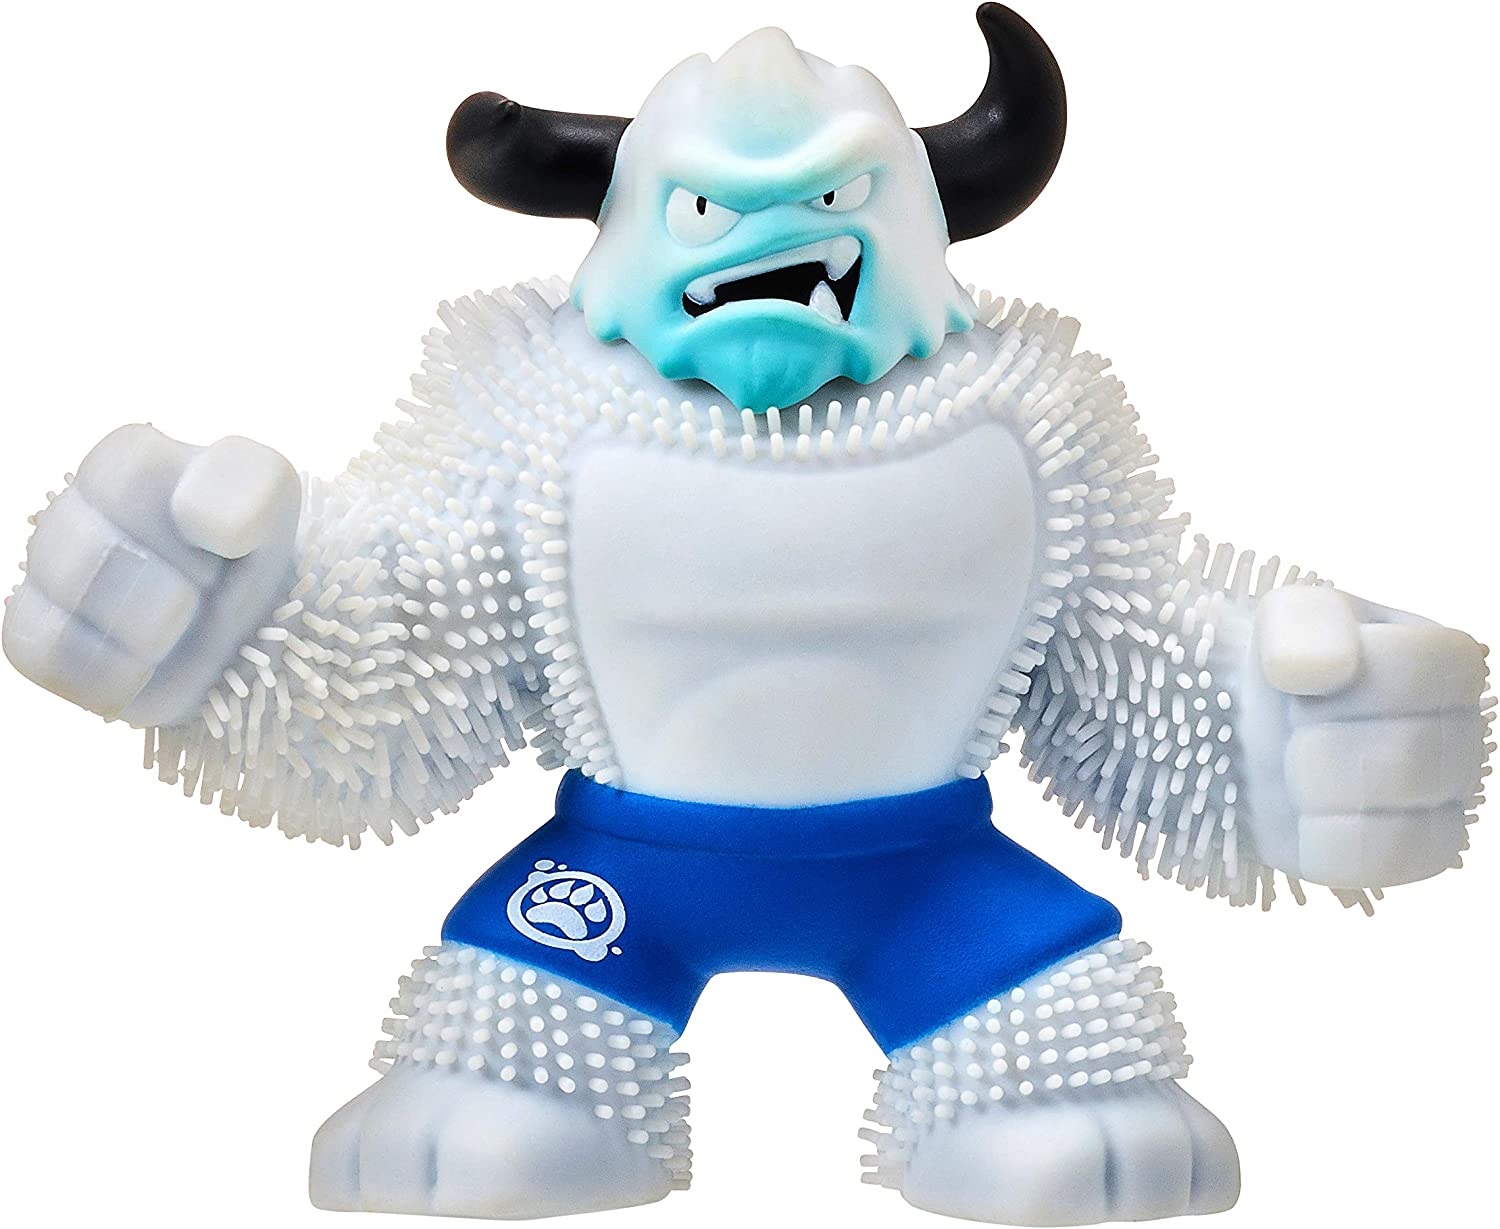 Heroes of Goo Jit Zu - Rare & Color Change Slushy Yeti Action Figure - Frostbite